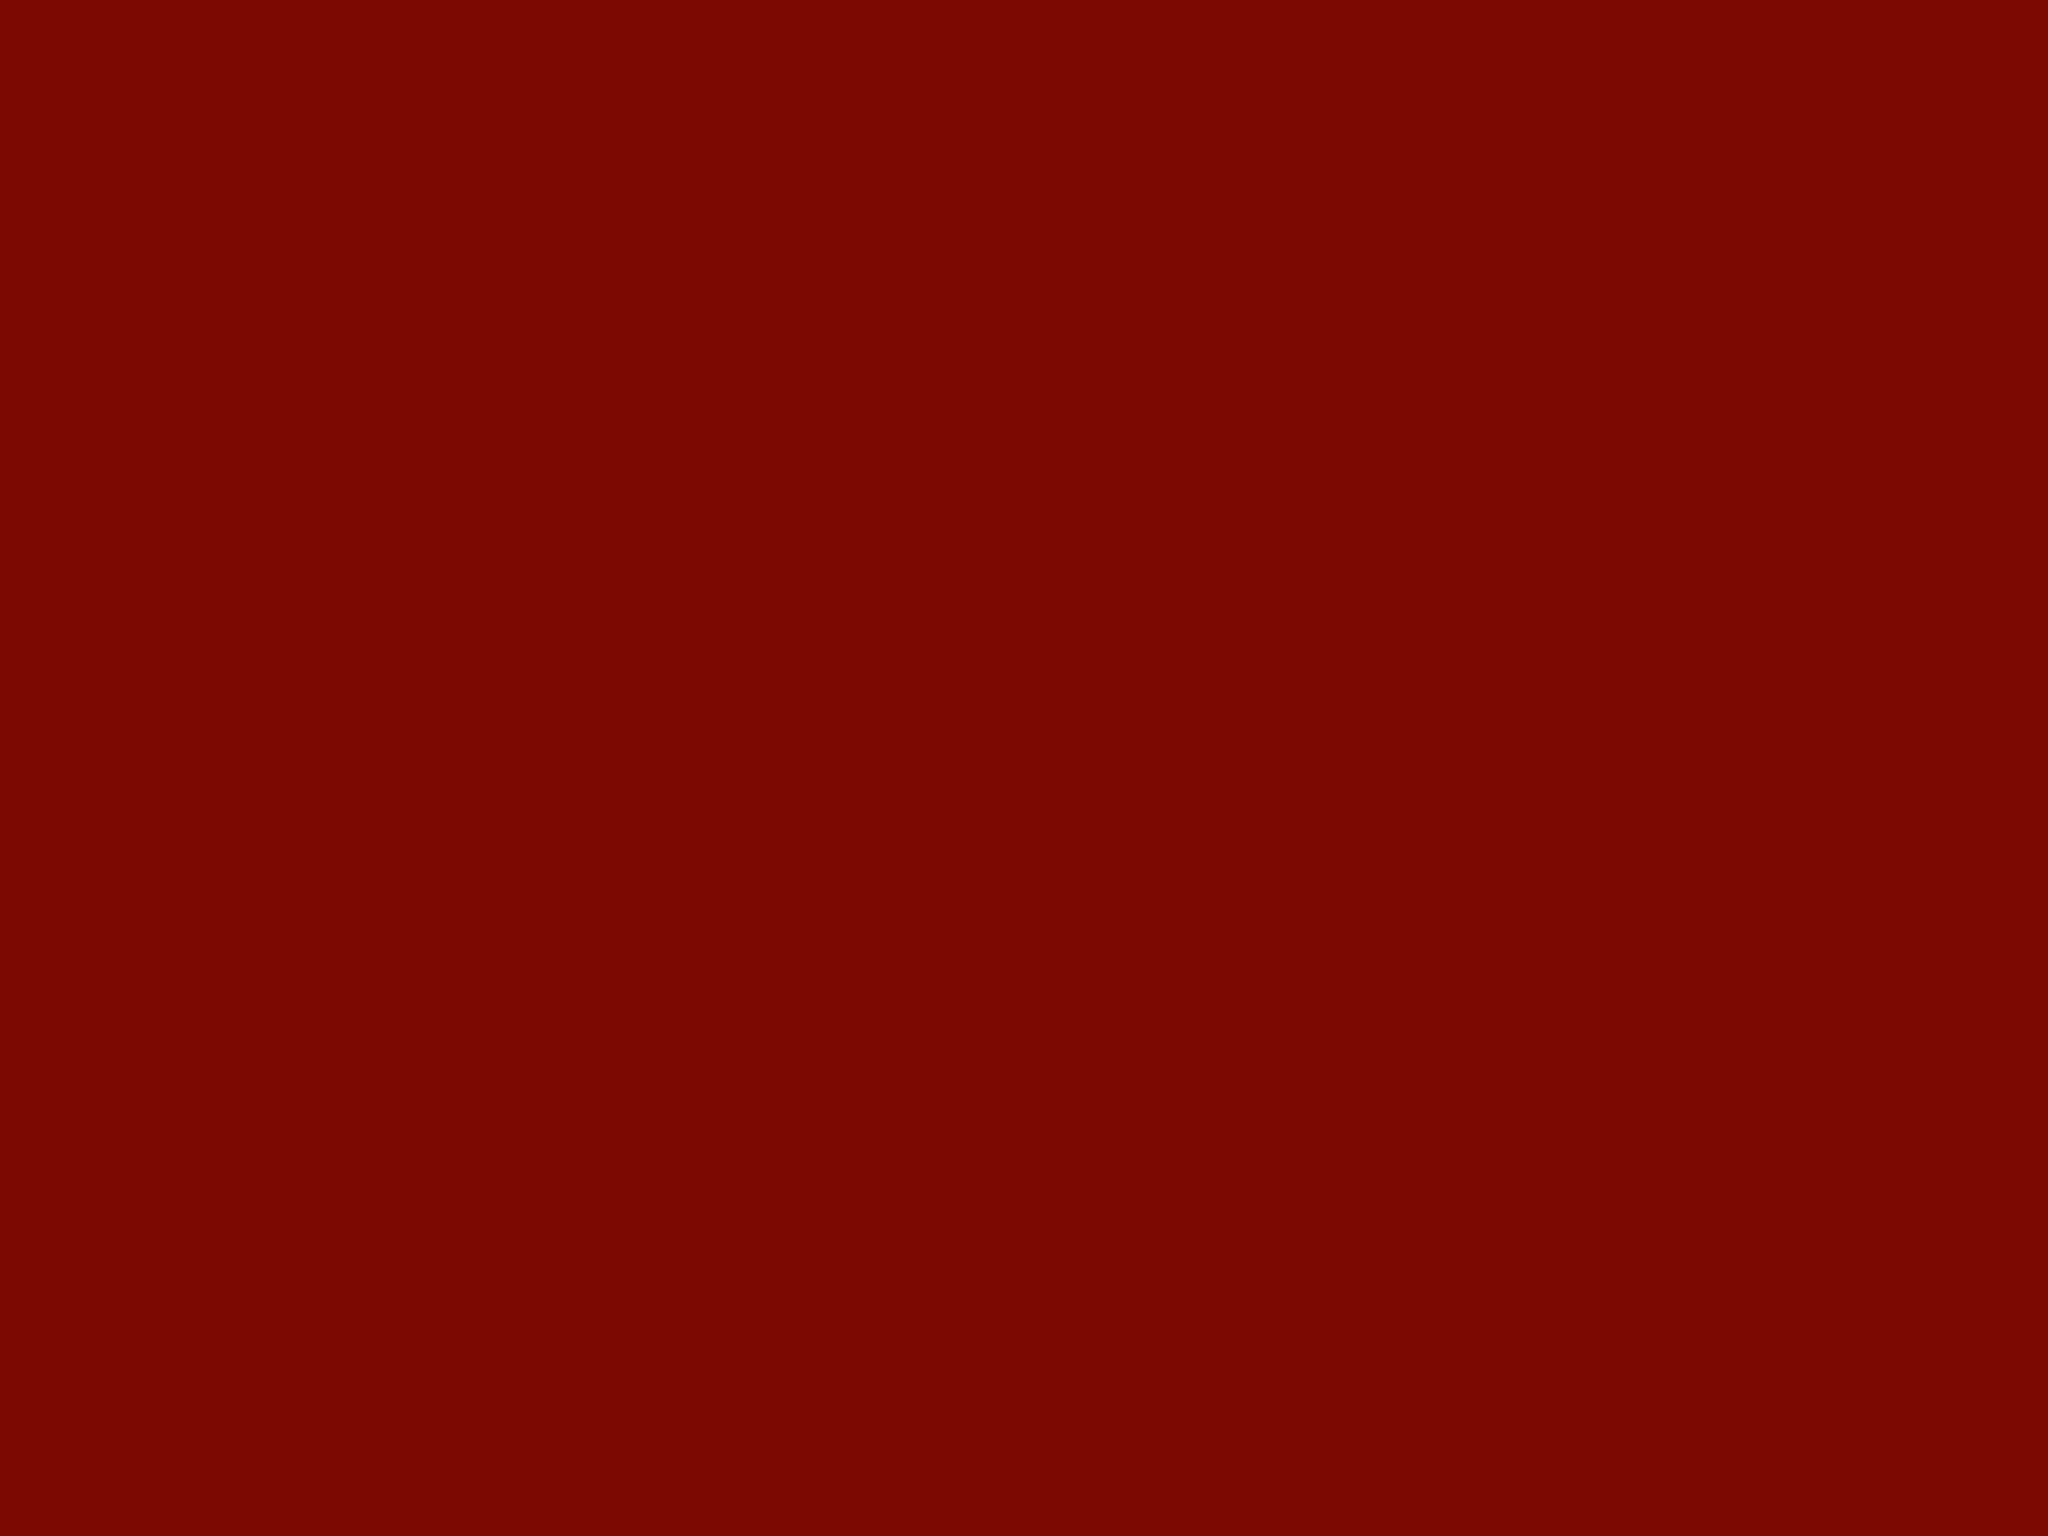 2048x1536 Barn Red Solid Color Background